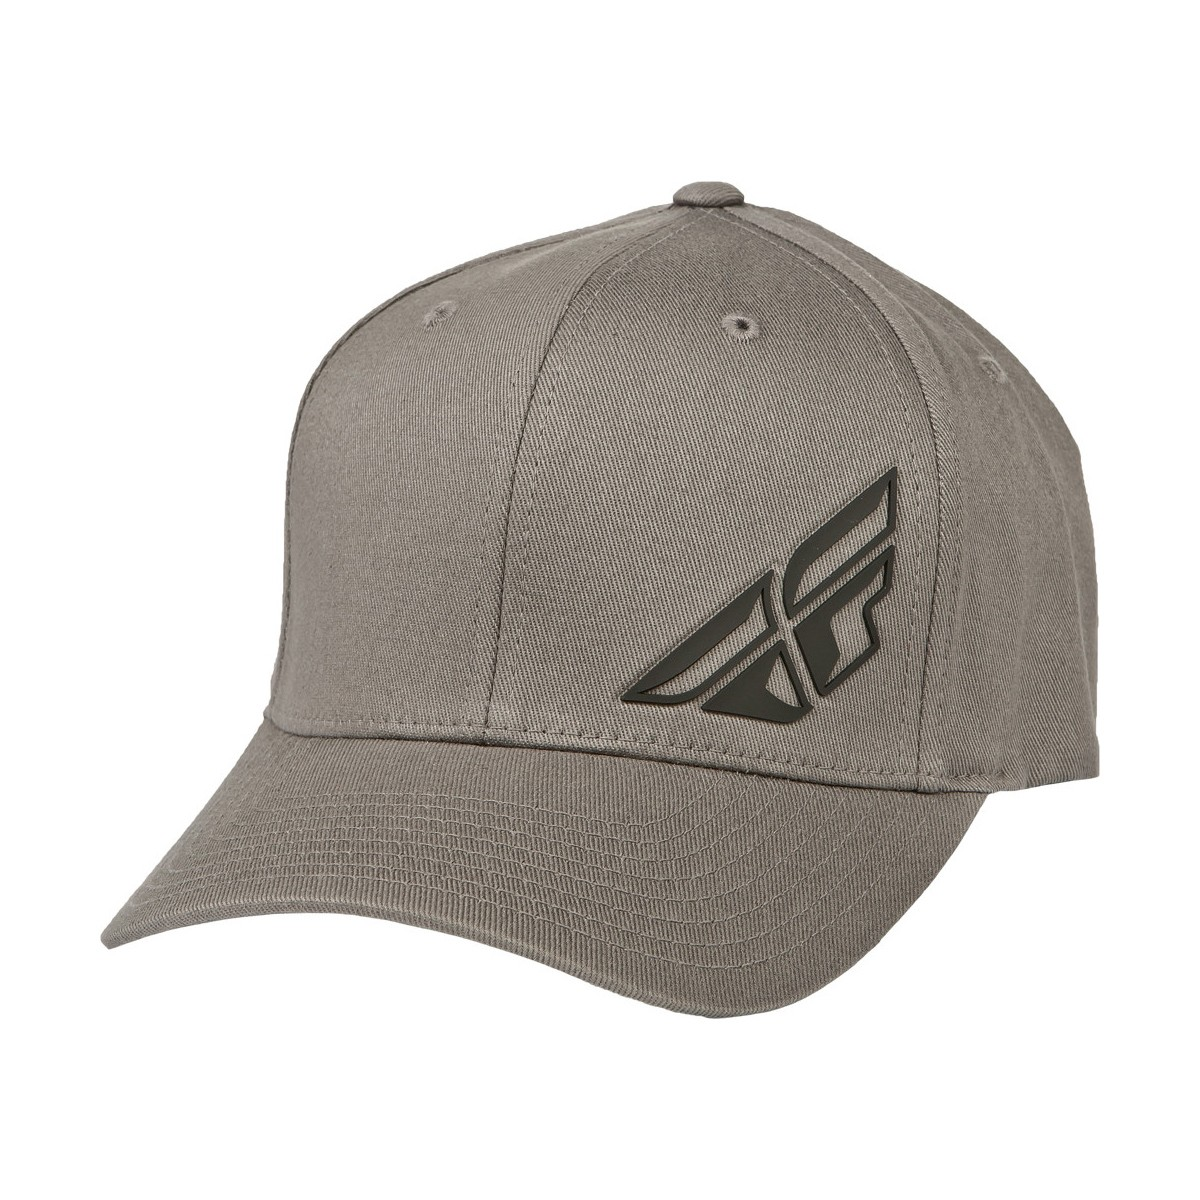 FLY F-WING HAT